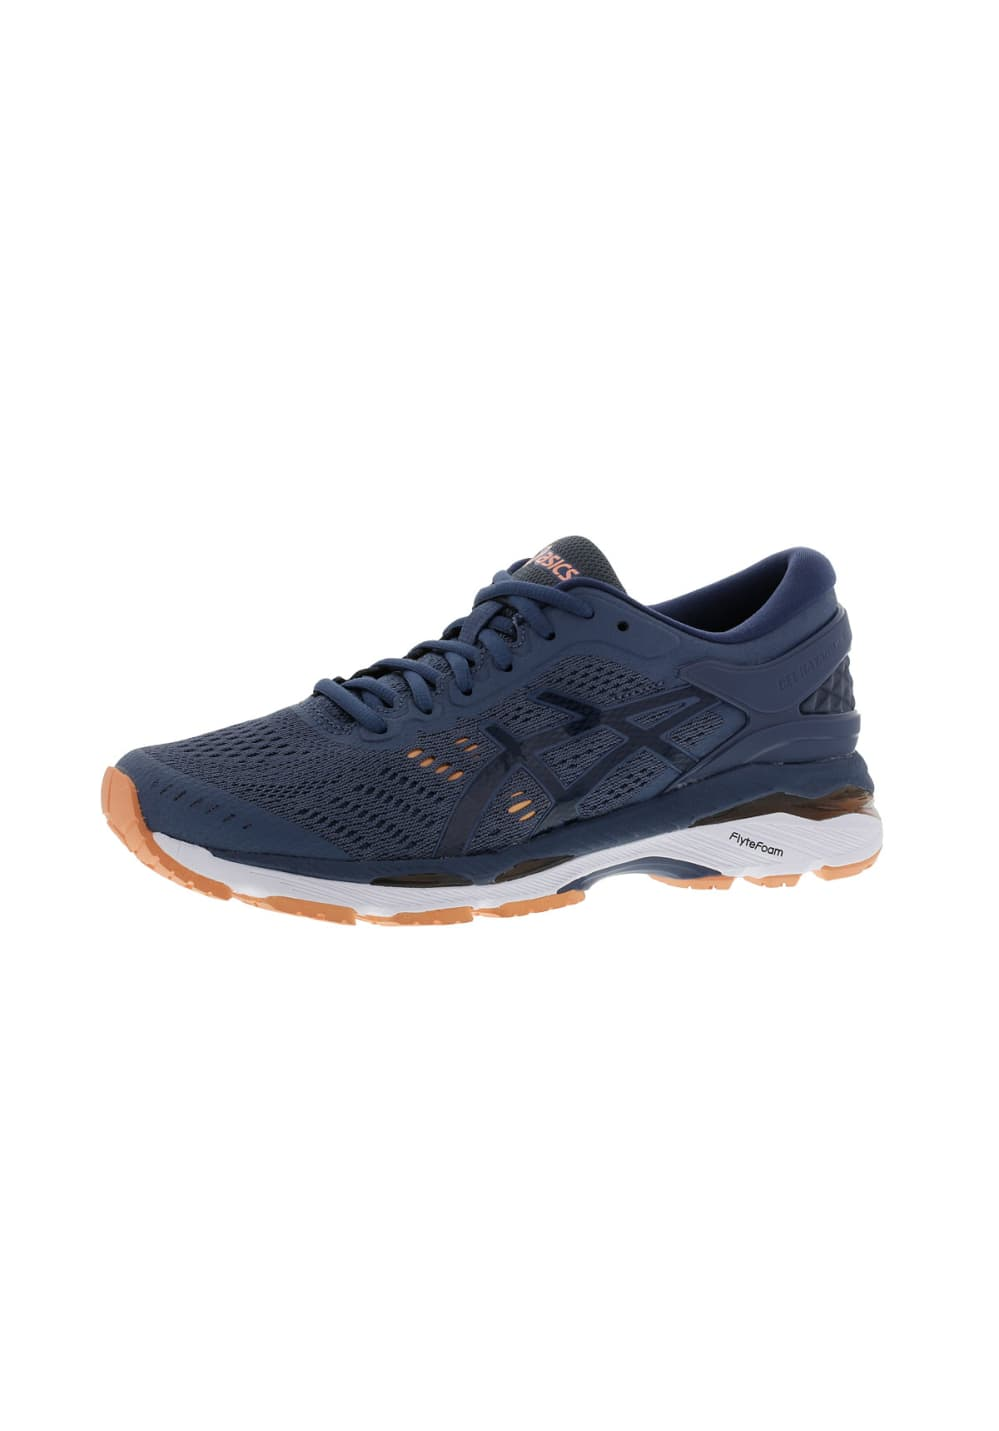 quality design 70806 cea66 ASICS GEL-Kayano 24 - Running shoes for Women - Grey